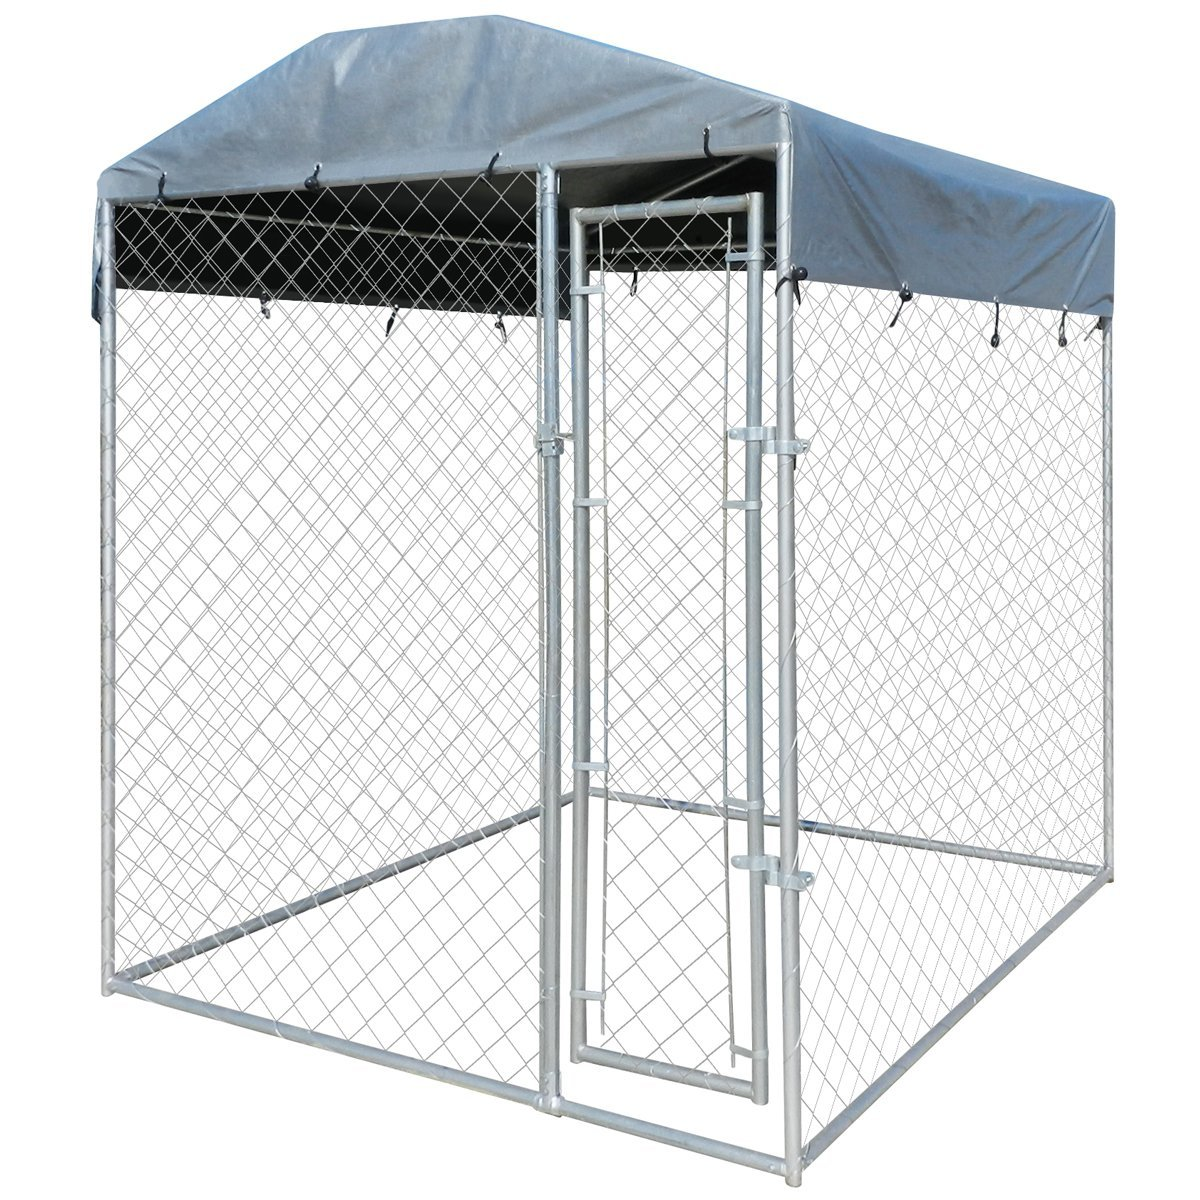 VidaXL Outdoor Dog Kennel with Canopy Top 192x192x235cm House Enclosure Cage